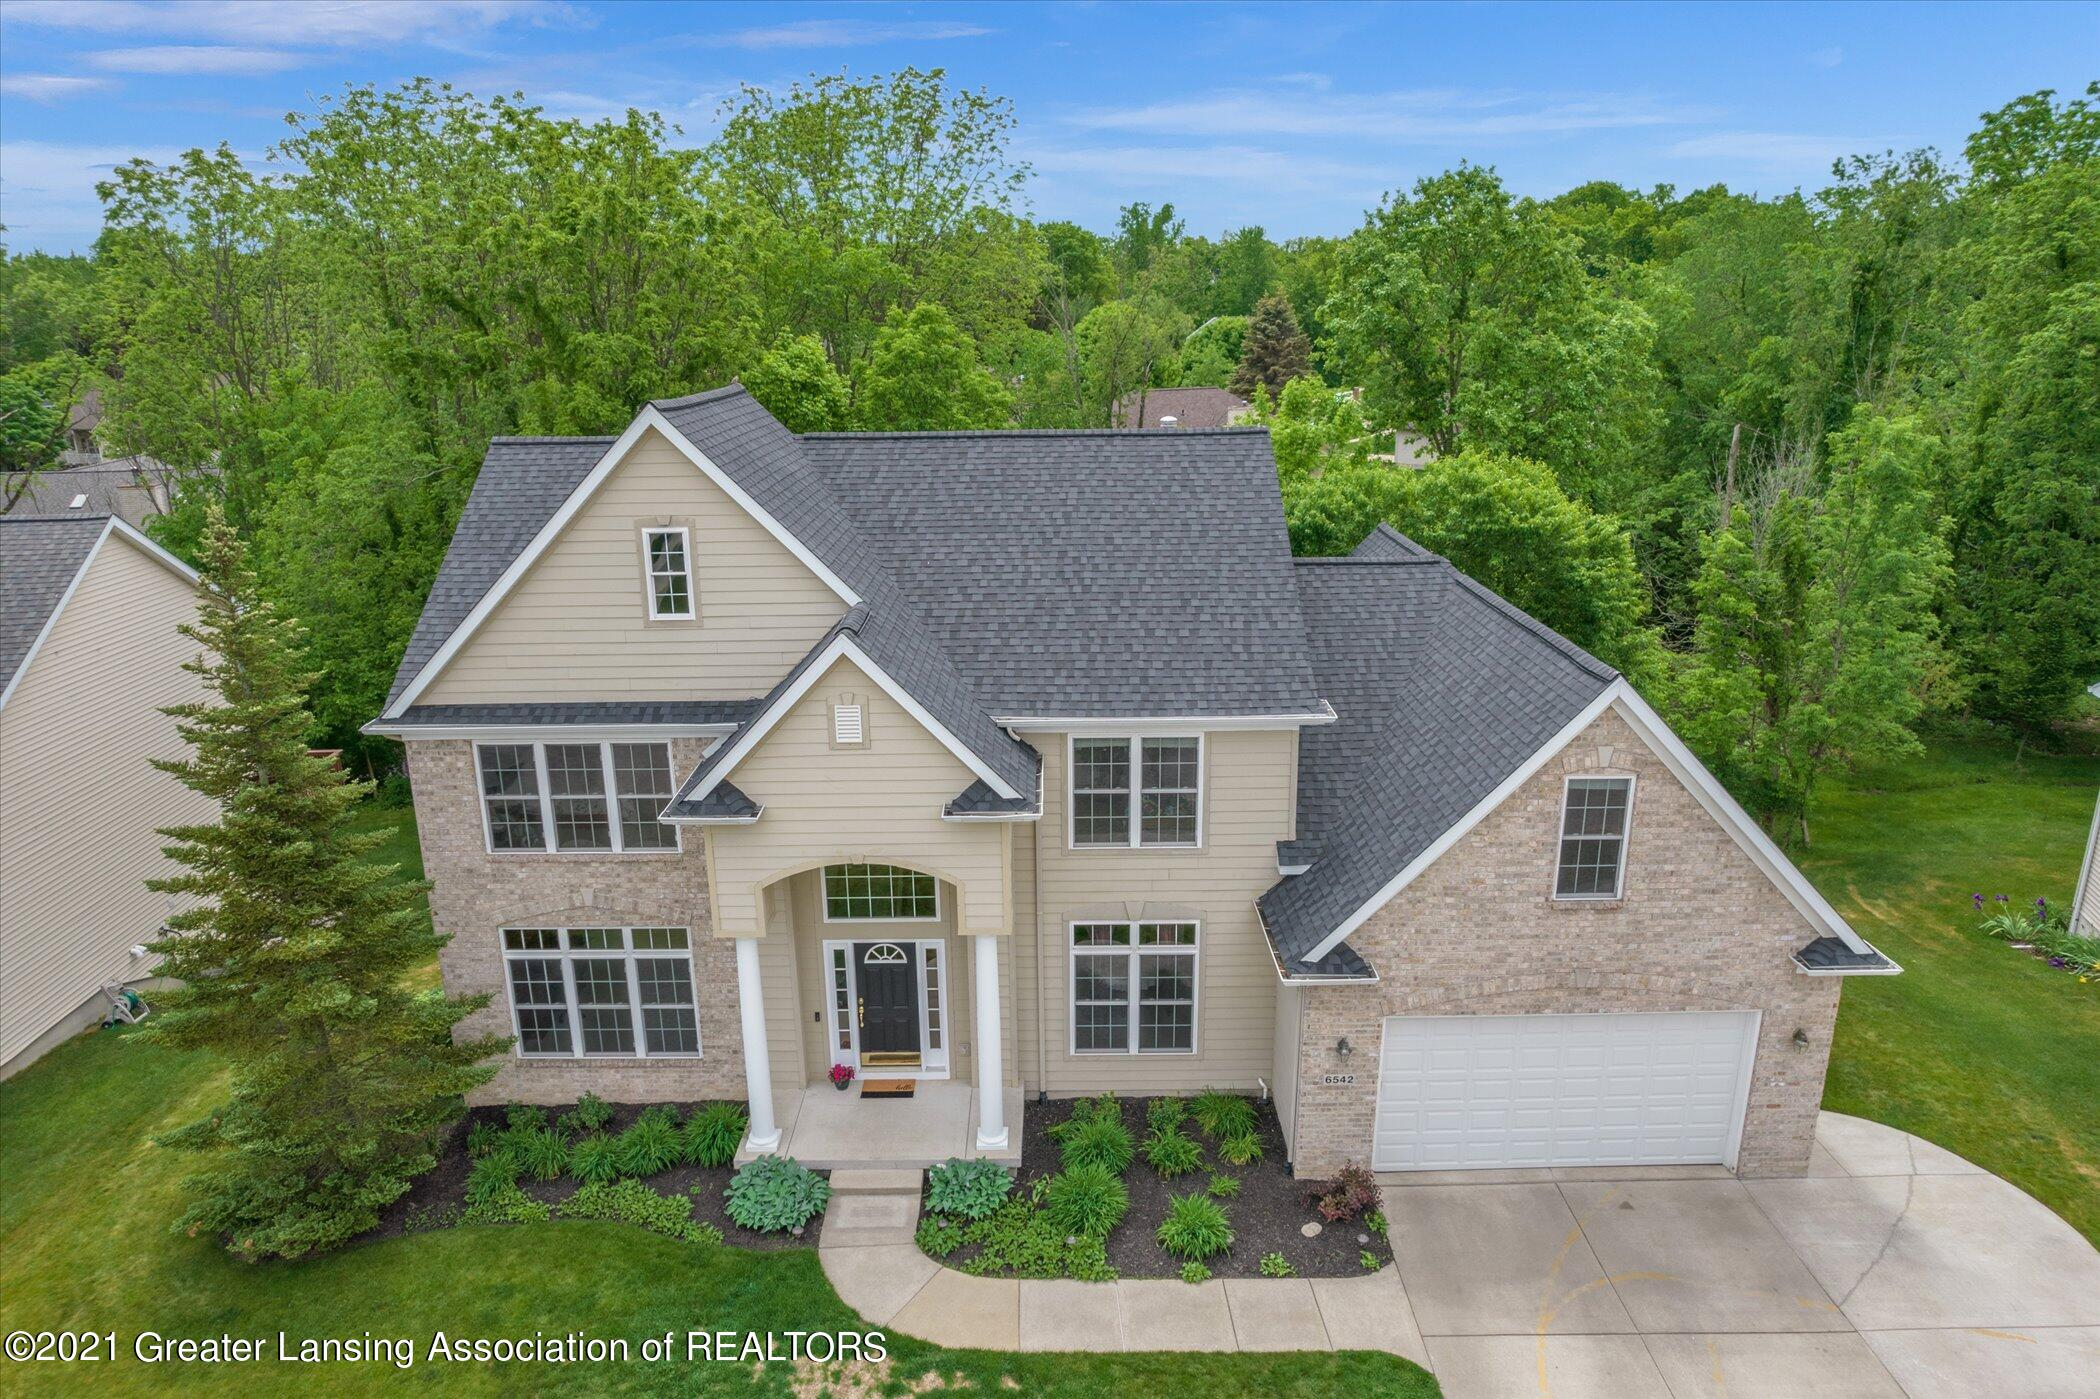 6542 White Clover Dr - EXTERIOR Front View Aerial - 2